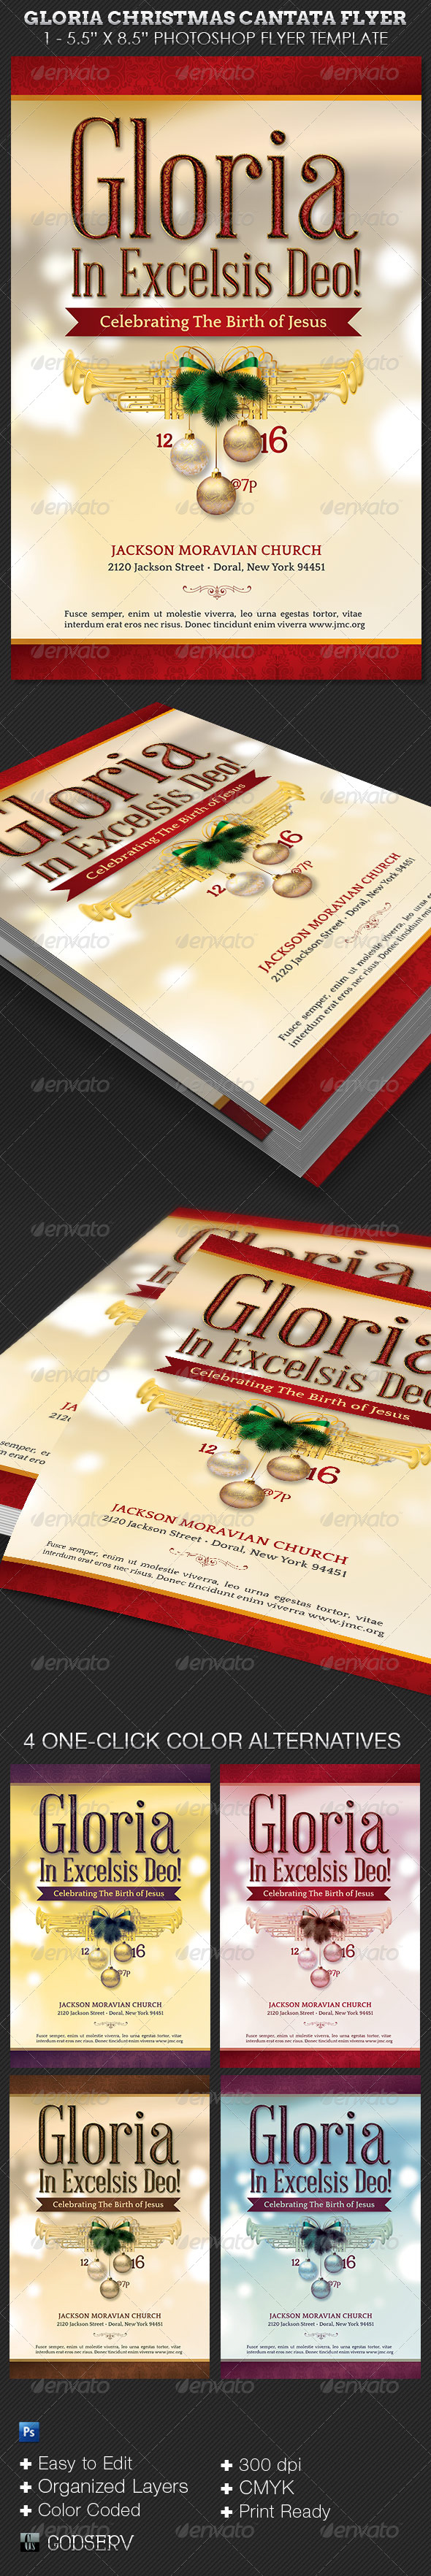 Gloria Christmas Cantata Flyer Template - Church Flyers